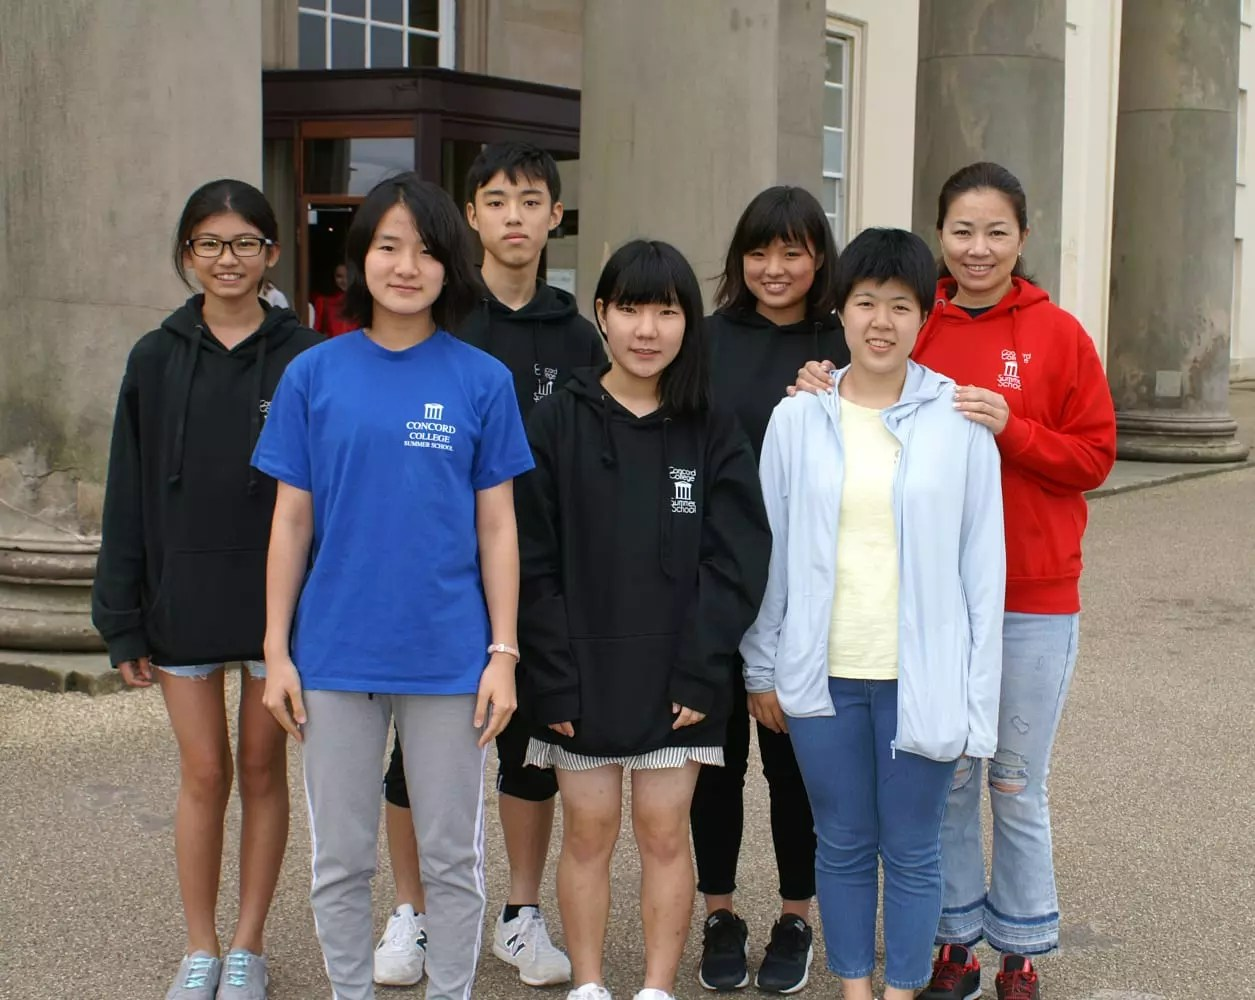 Concord Alumni Brings Japanese Students To Summer School